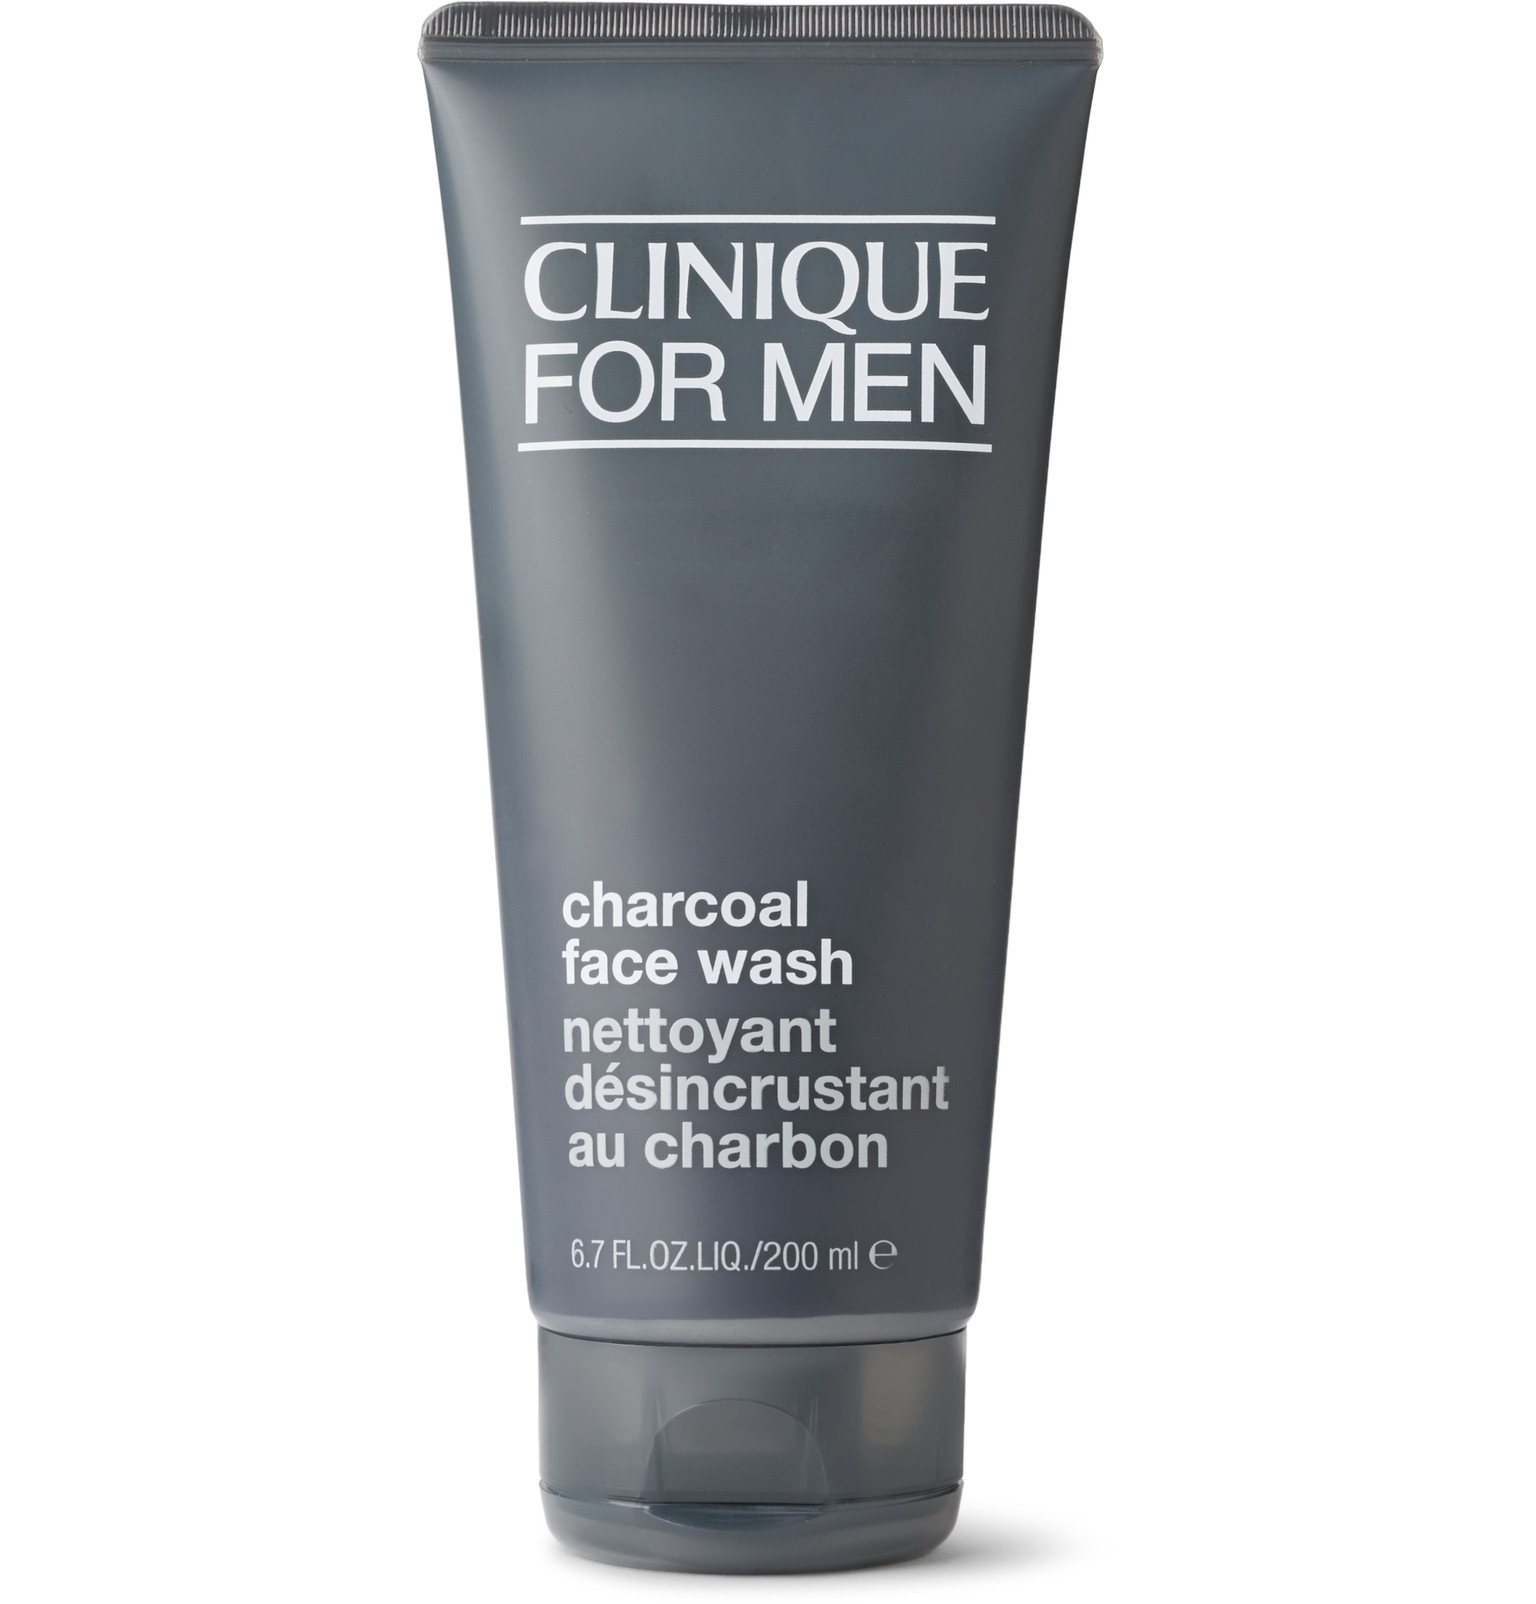 Clinique For Men Charcoal Face Wash - A perfect everyday cleanser that's foamy, can clear up blemishes and reduces the oiliness on your face. ($20, clinique.com)